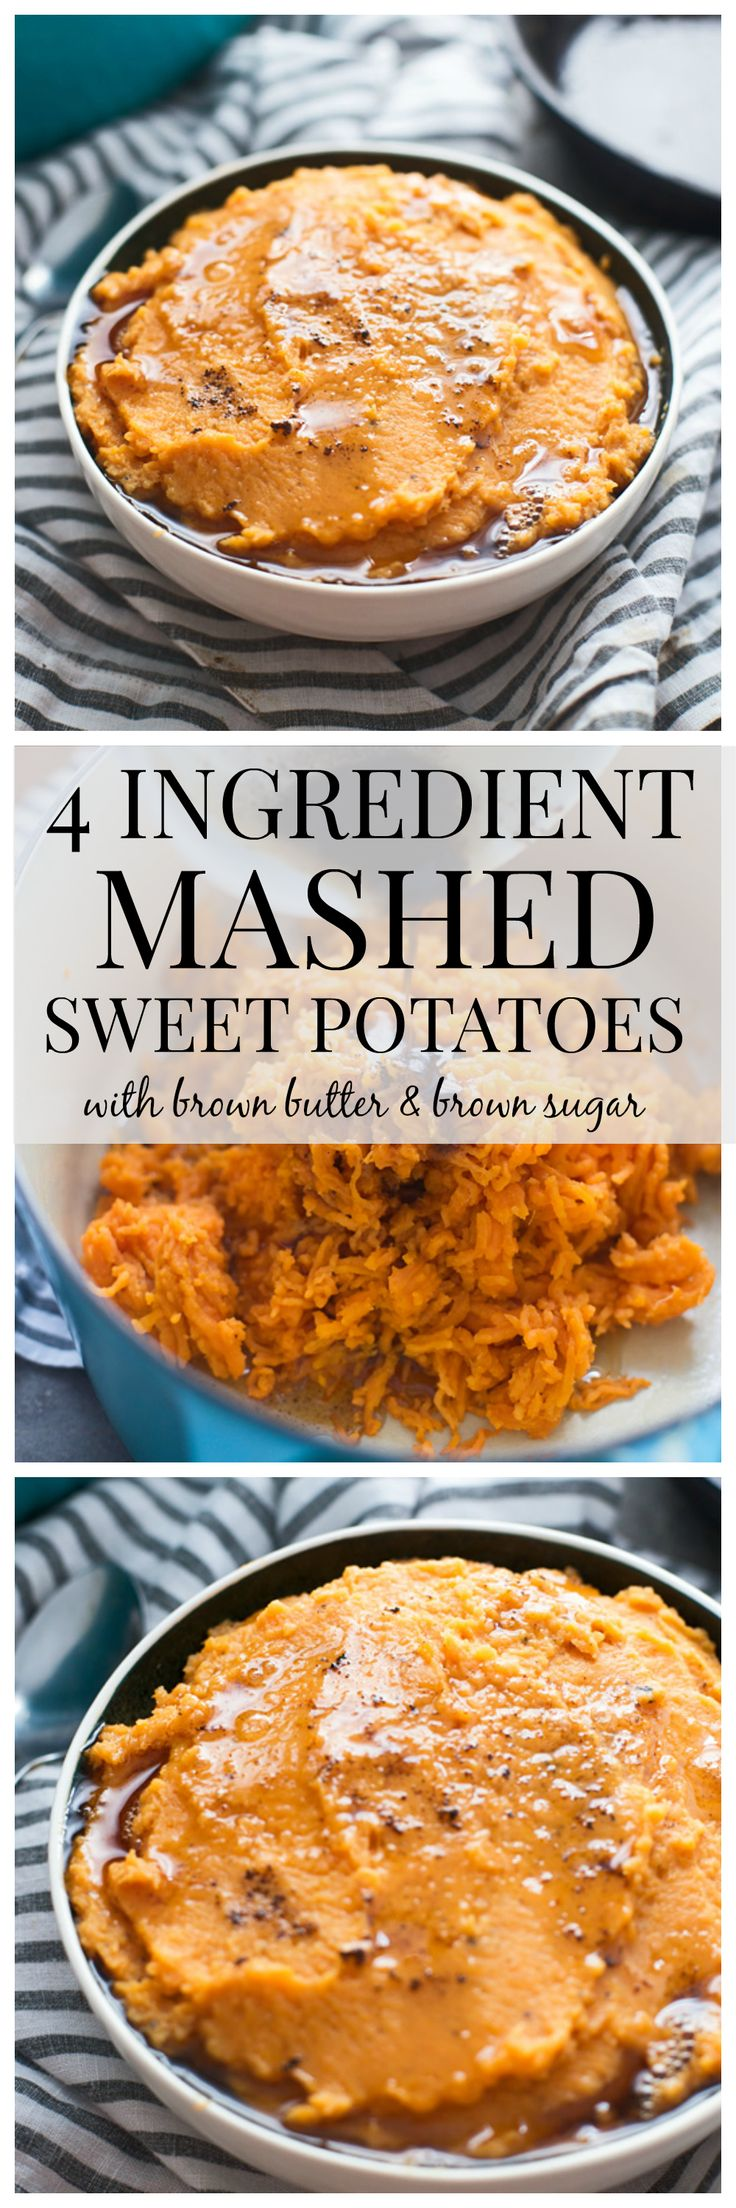 4 Ingredient Mashed Sweet Potatoes with Brown Butter and Brown Sugar